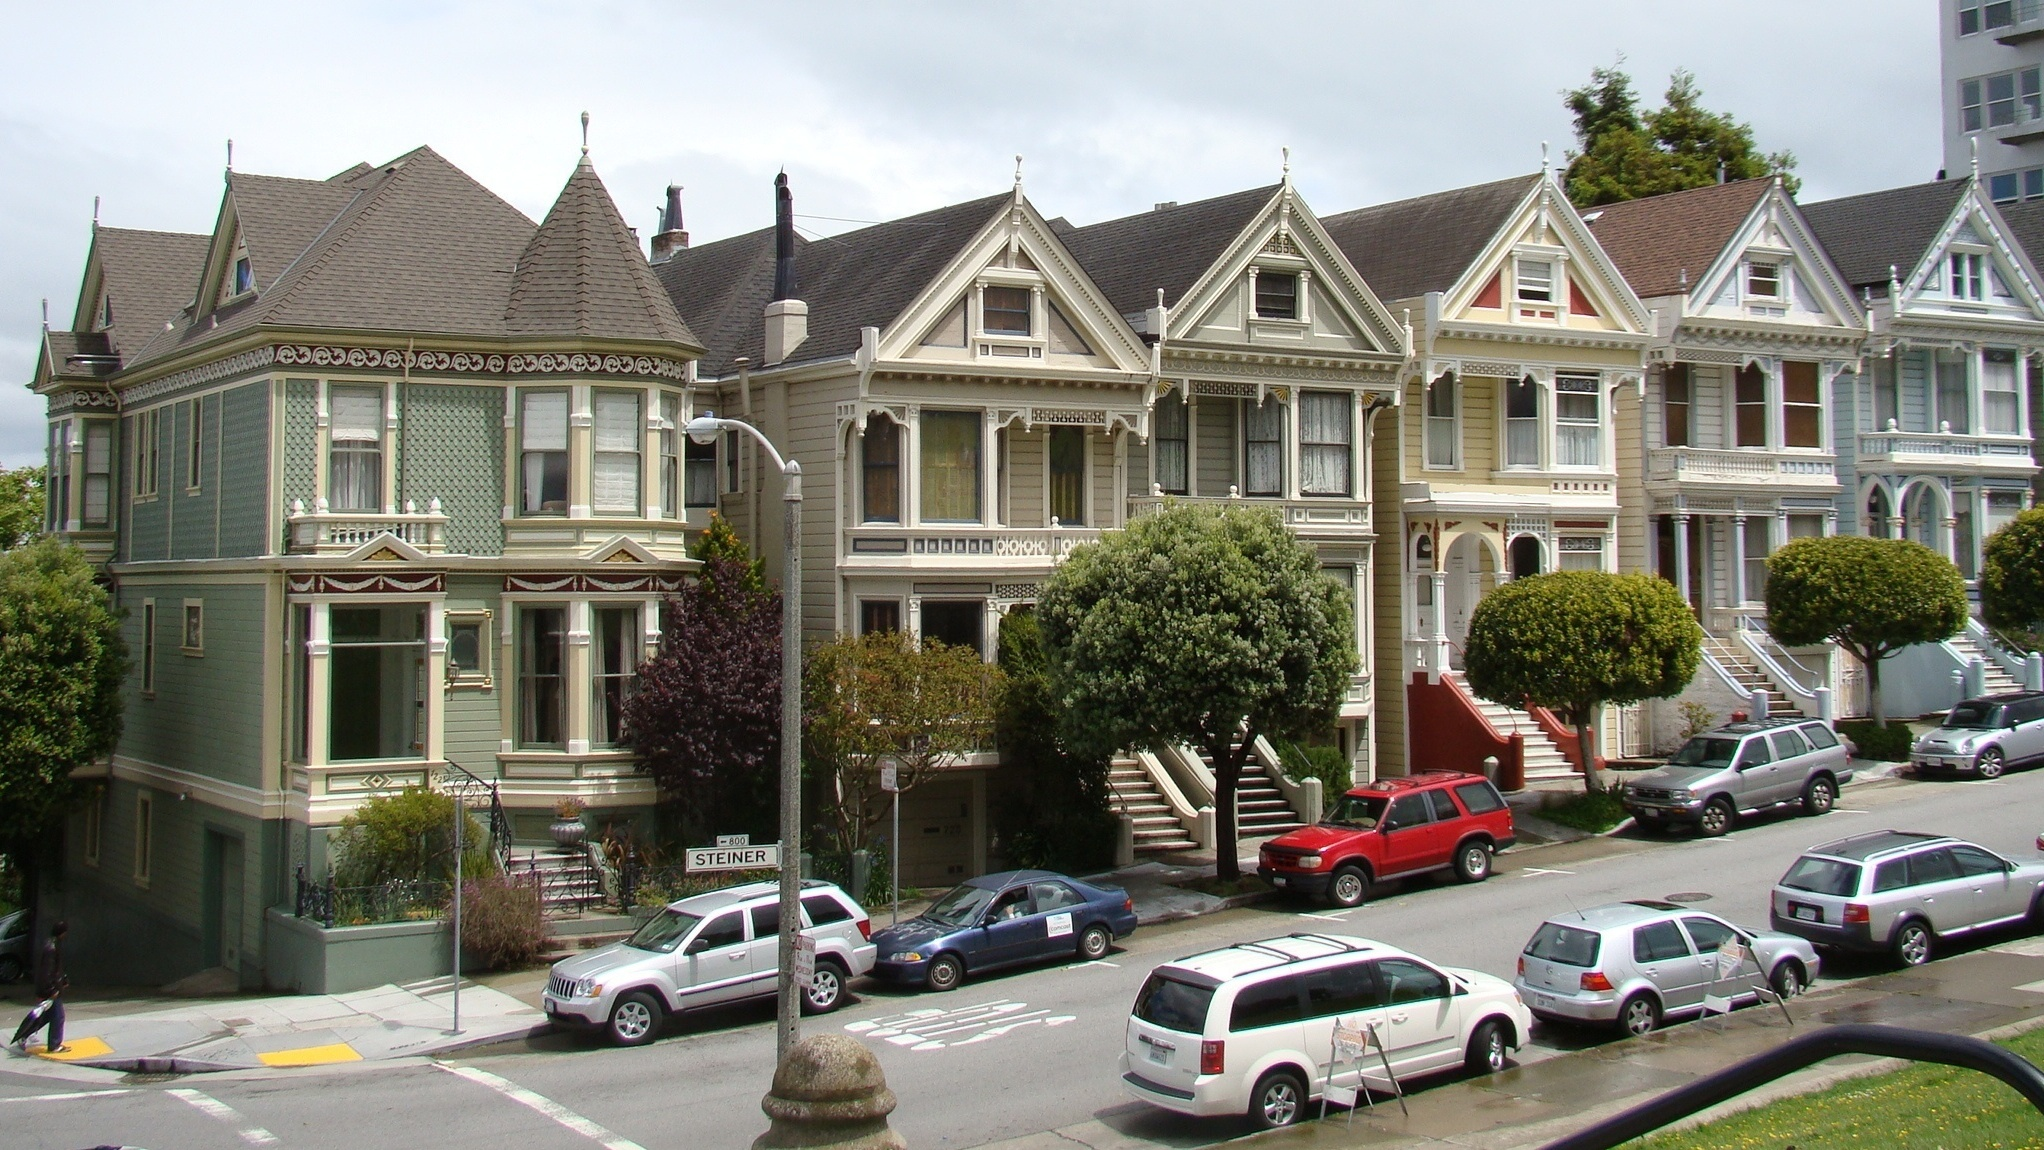 A San Francisco 'Painted Lady' Sells For $900K Under Asking Price